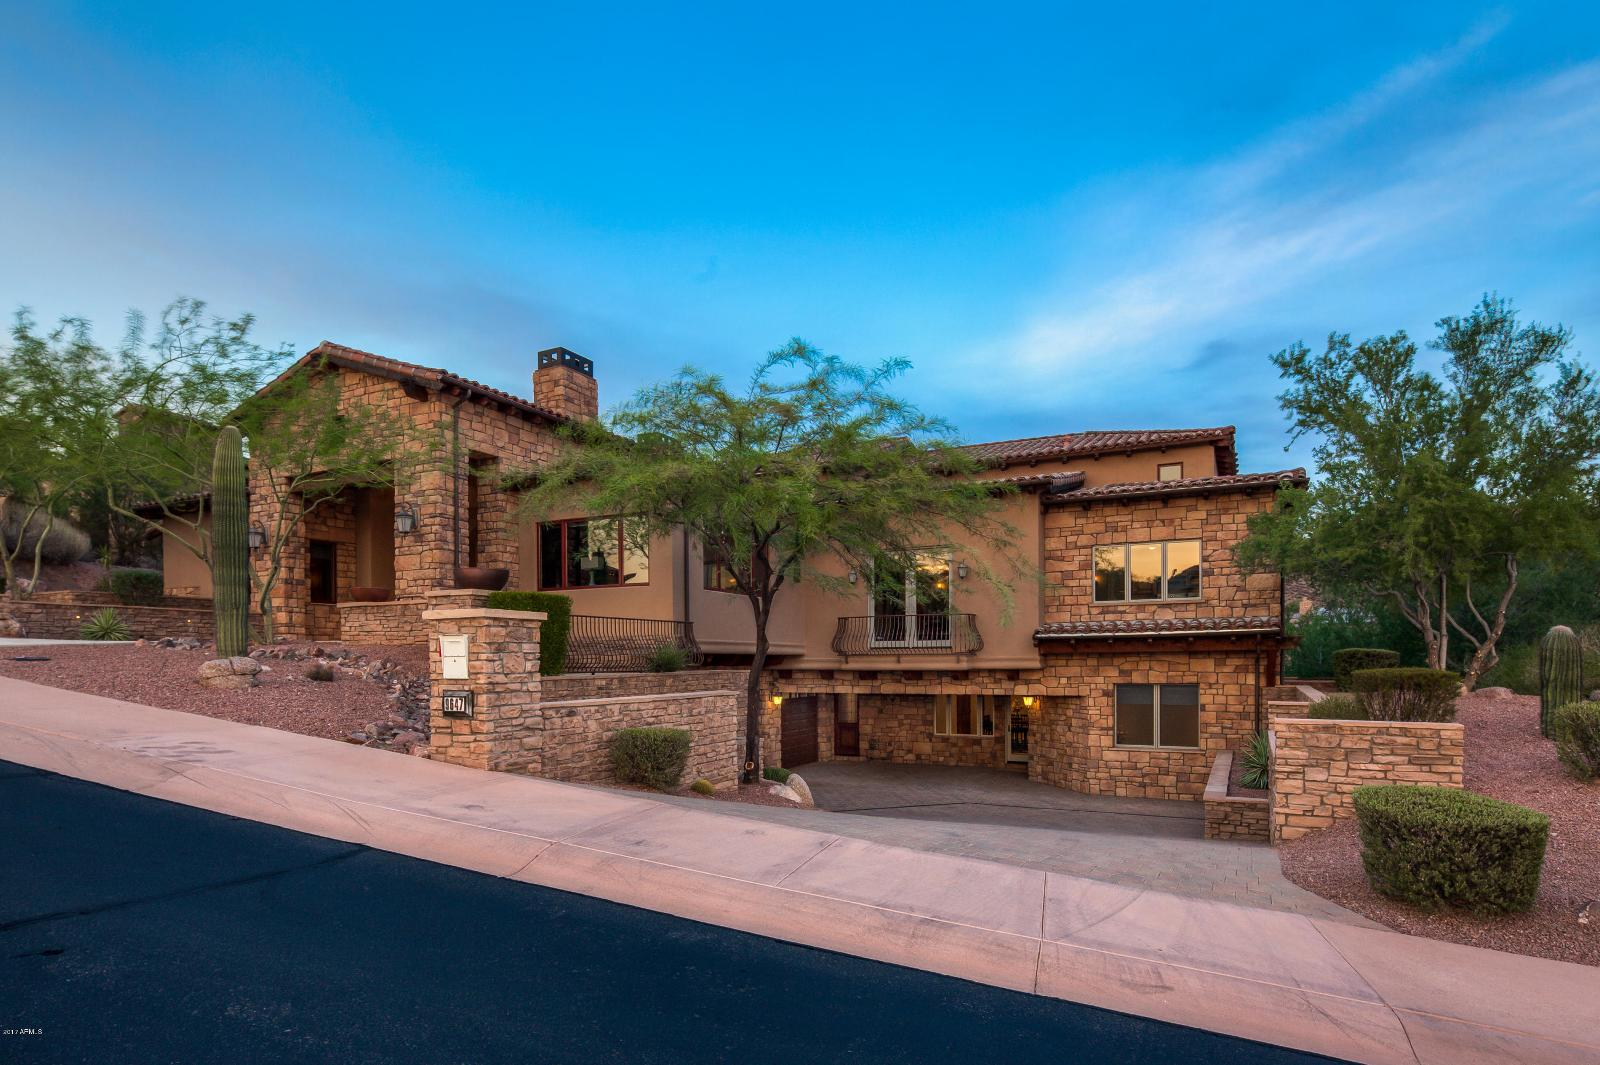 Local Real Estate: Homes for Sale — Firerock, AZ — Coldwell Banker